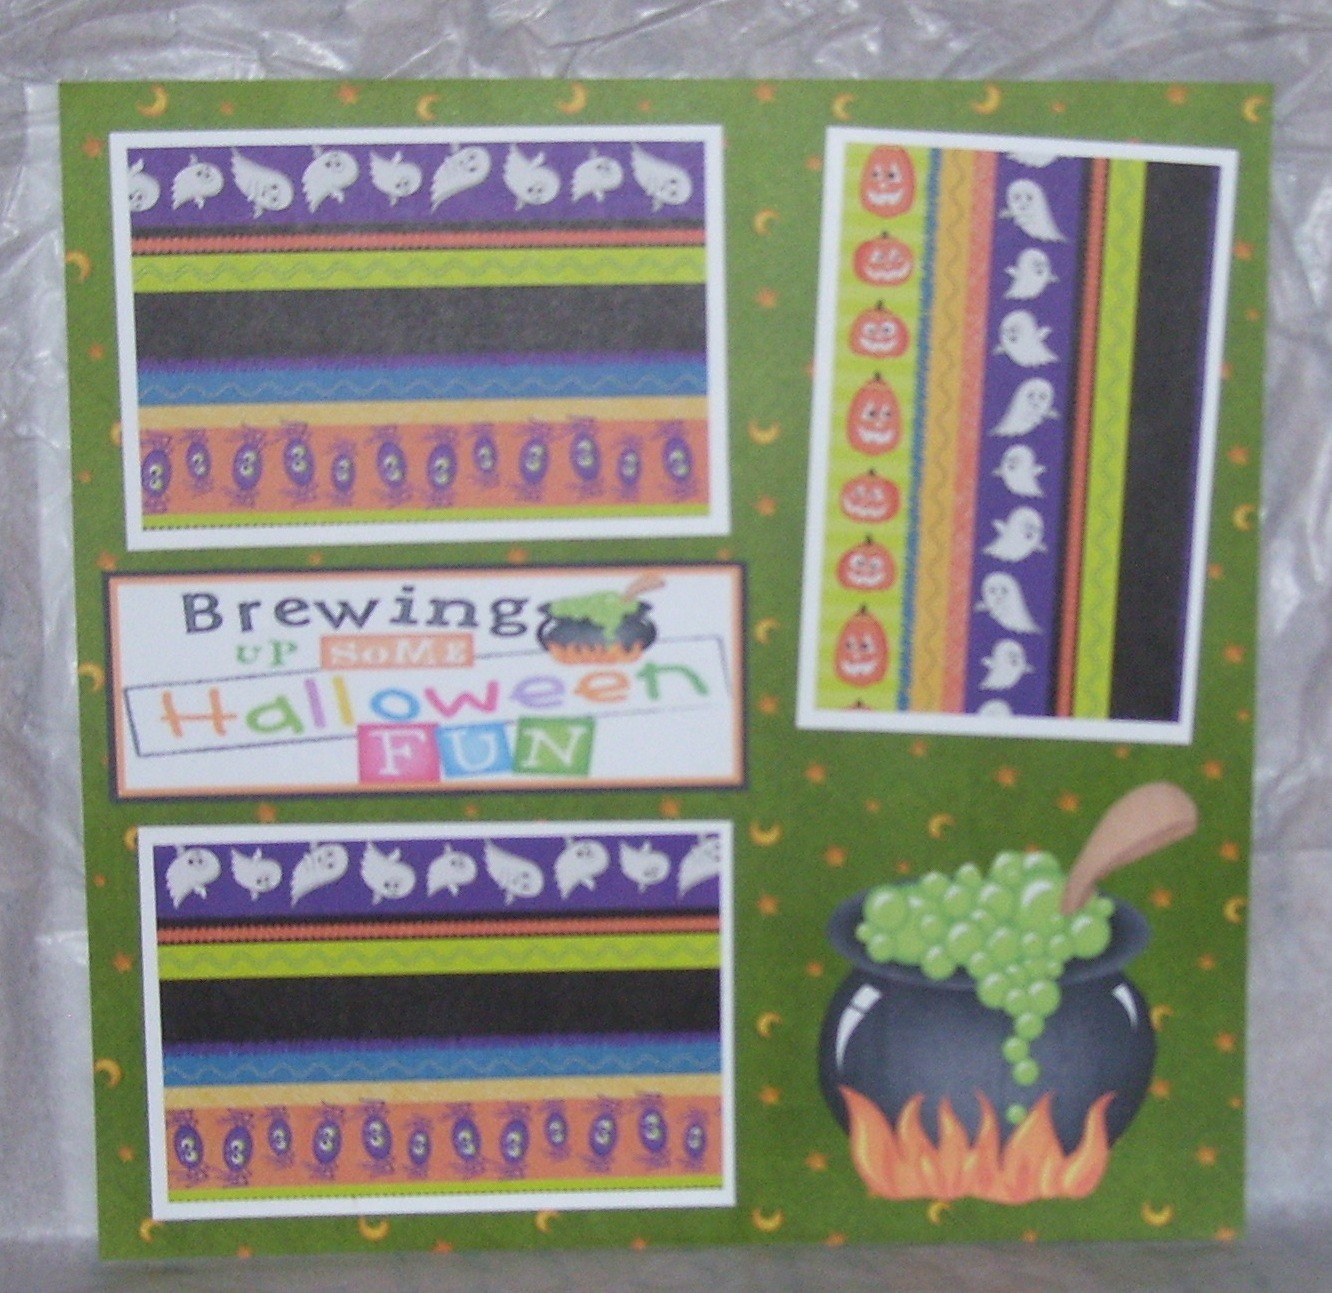 """""""Brewing Up Some Halloween Fun nw""""-Premade Scrapbook Page 12x12"""